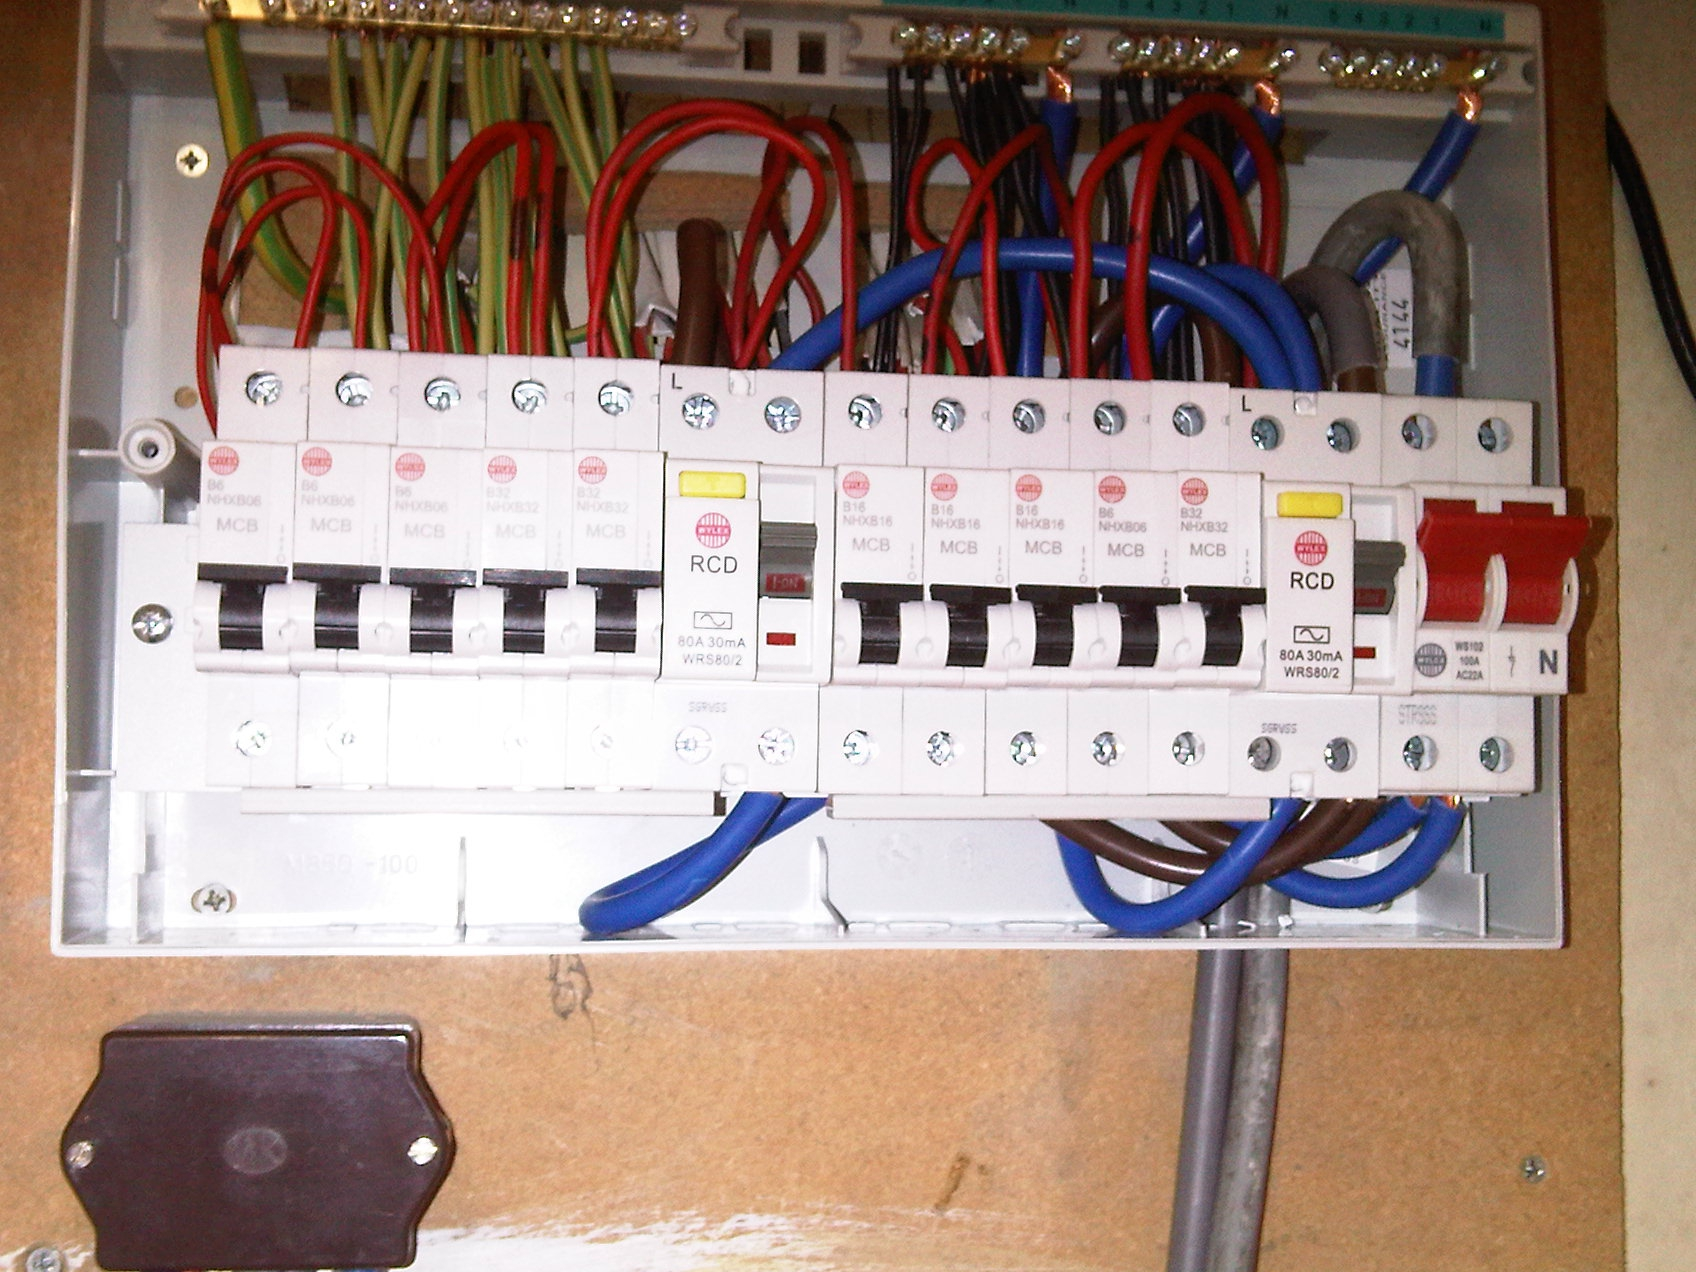 Fuse Box Wiring House Diagram Schemes Home Built Electric Detailed Schematics Old